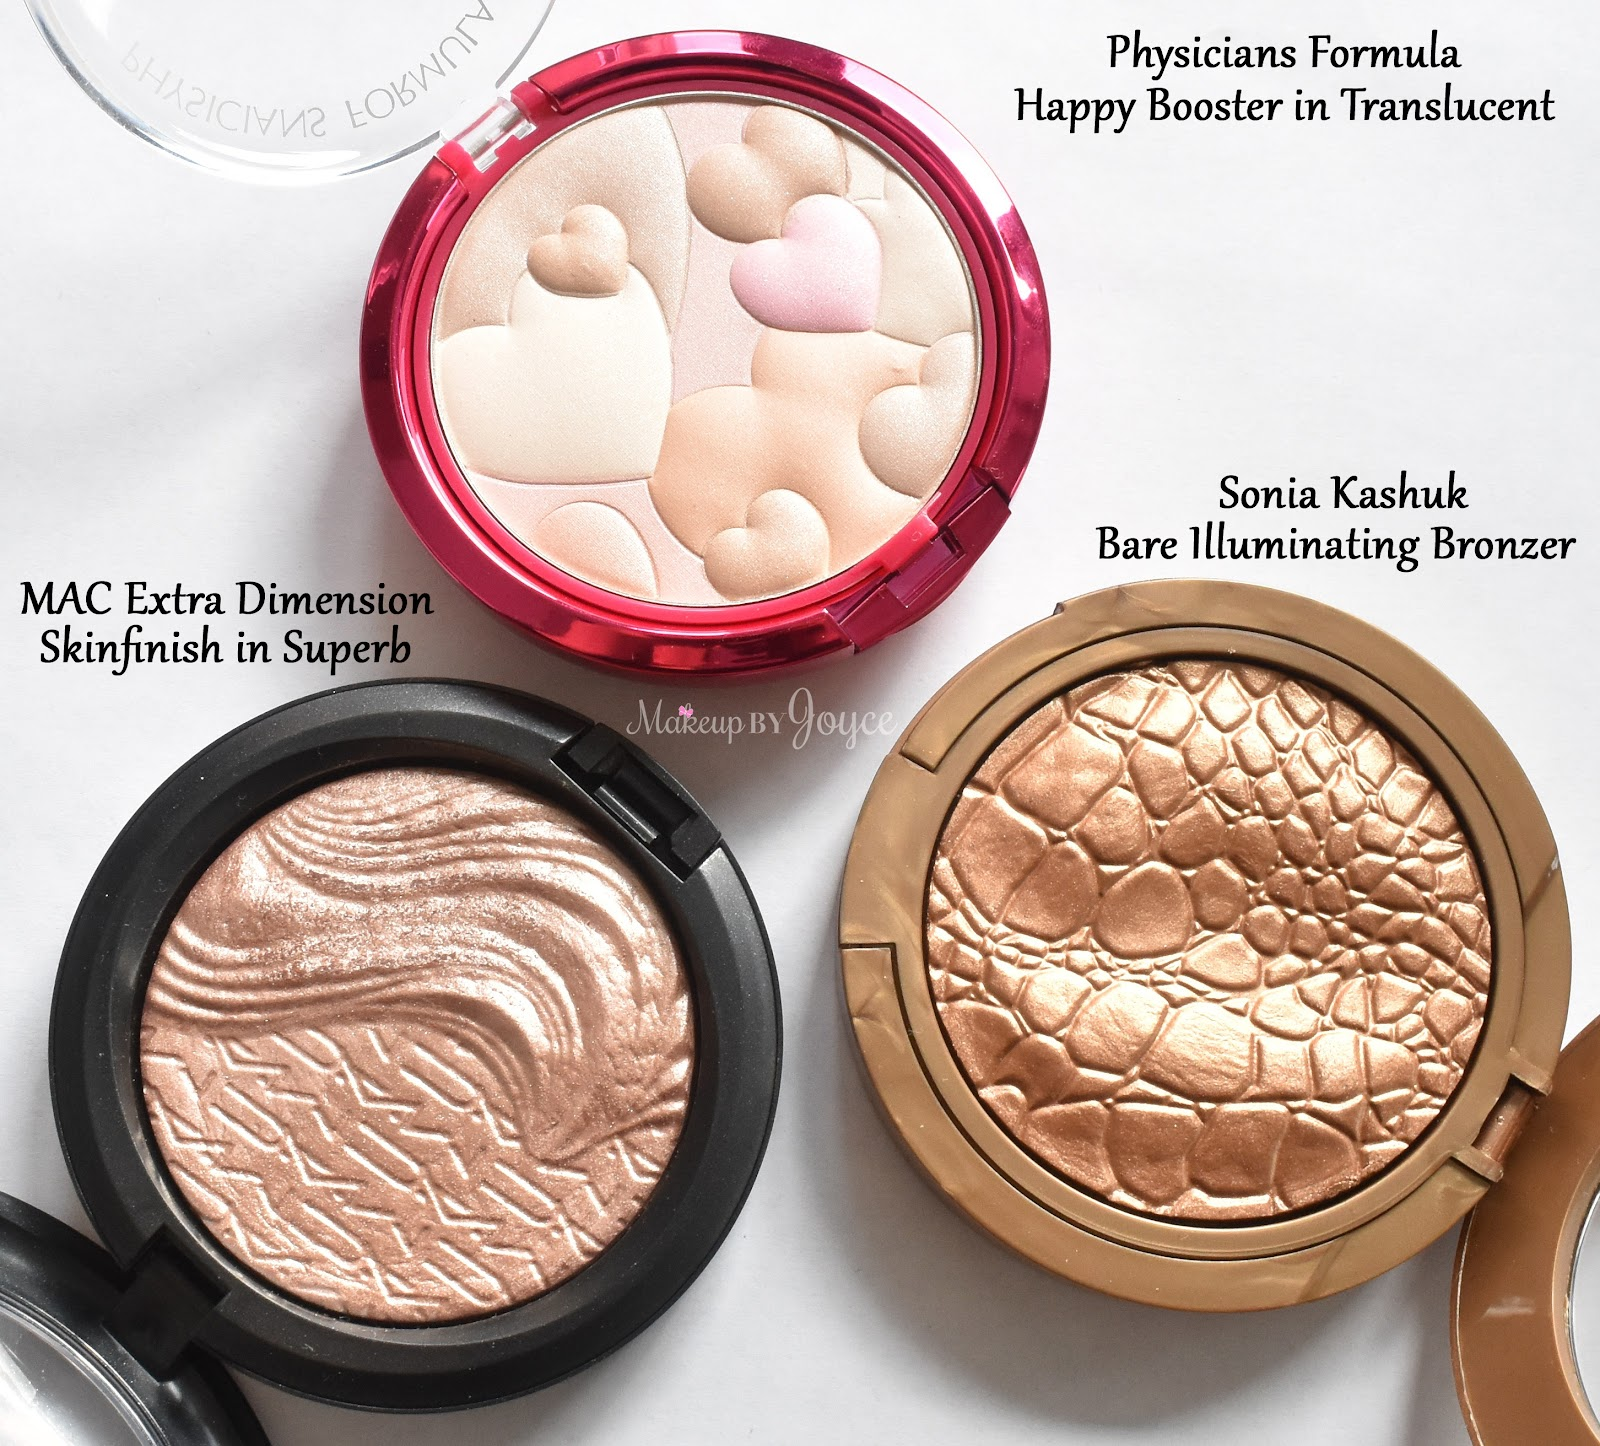 Physicians Formula Makeup at Walgreens. View current promotions and reviews of Physicians Formula Makeup and get free shipping at $